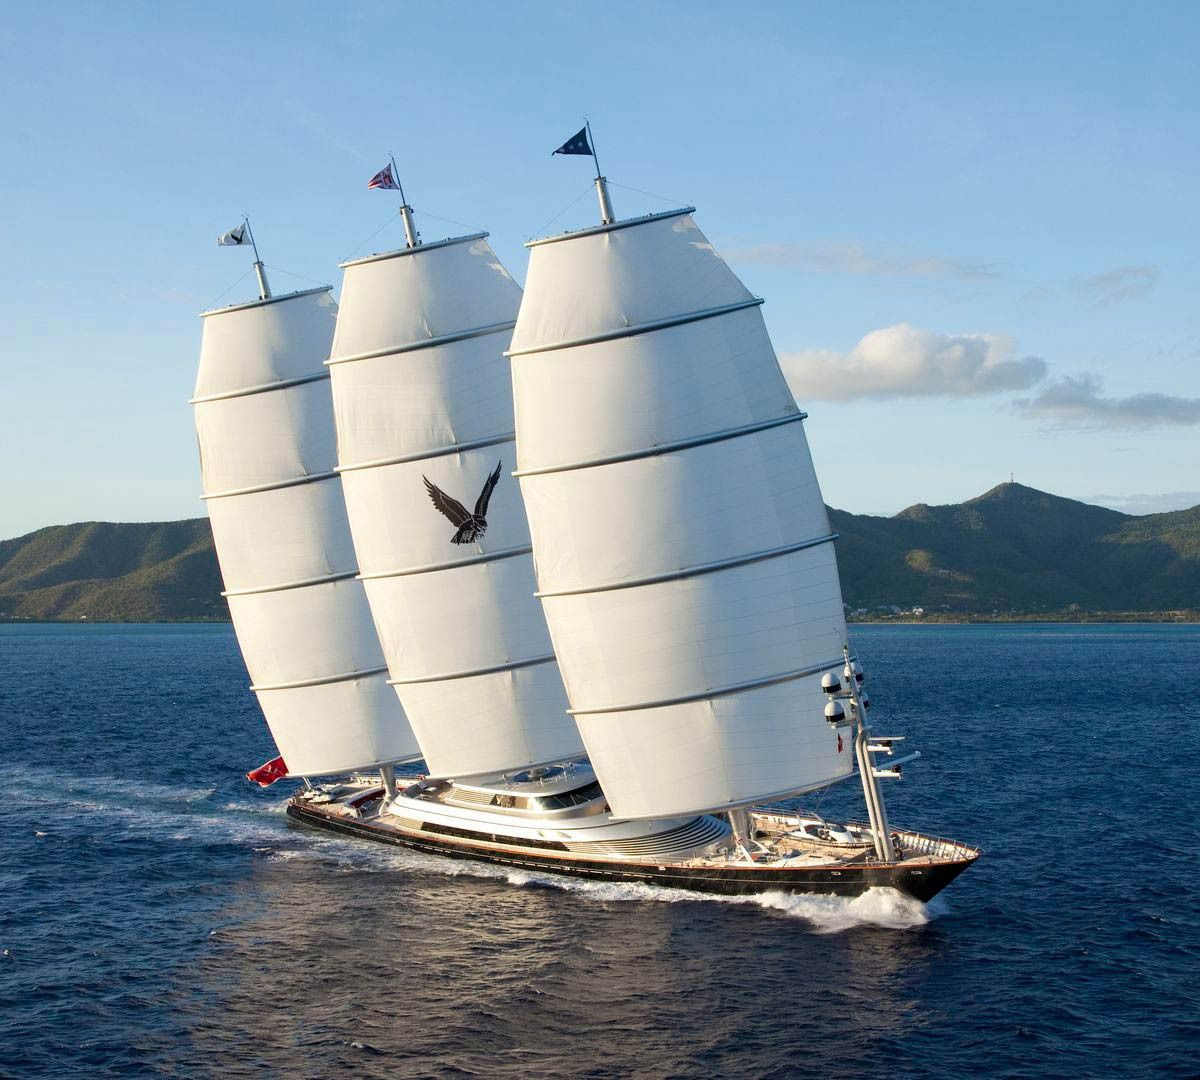 Project Maltese Falcon Sailing Yacht Maltese Falcon Yacht Yacht